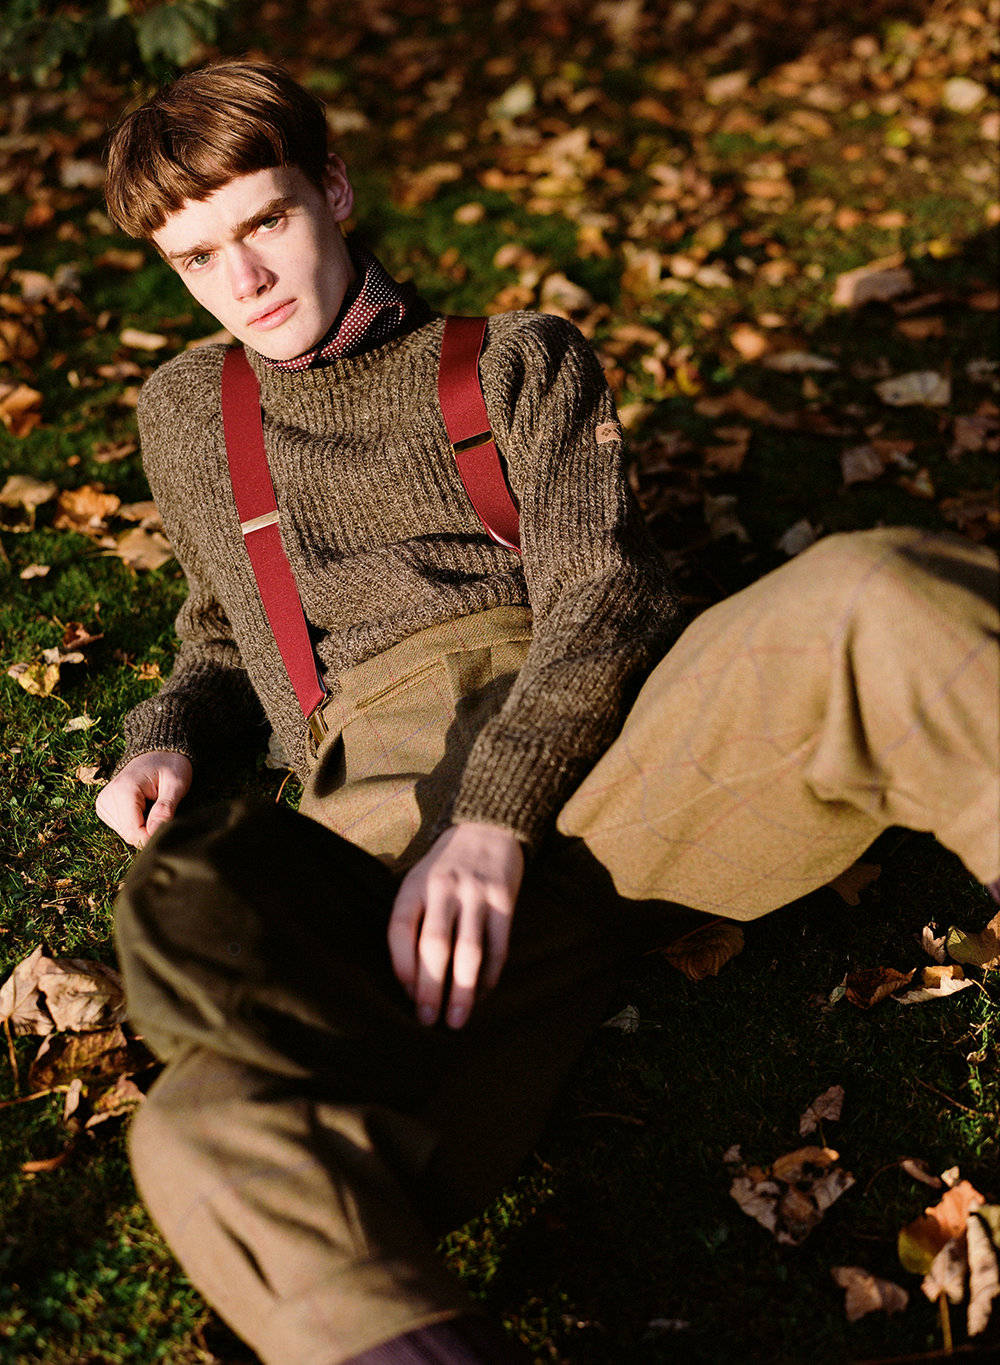 Isaac for Stewart Christie.